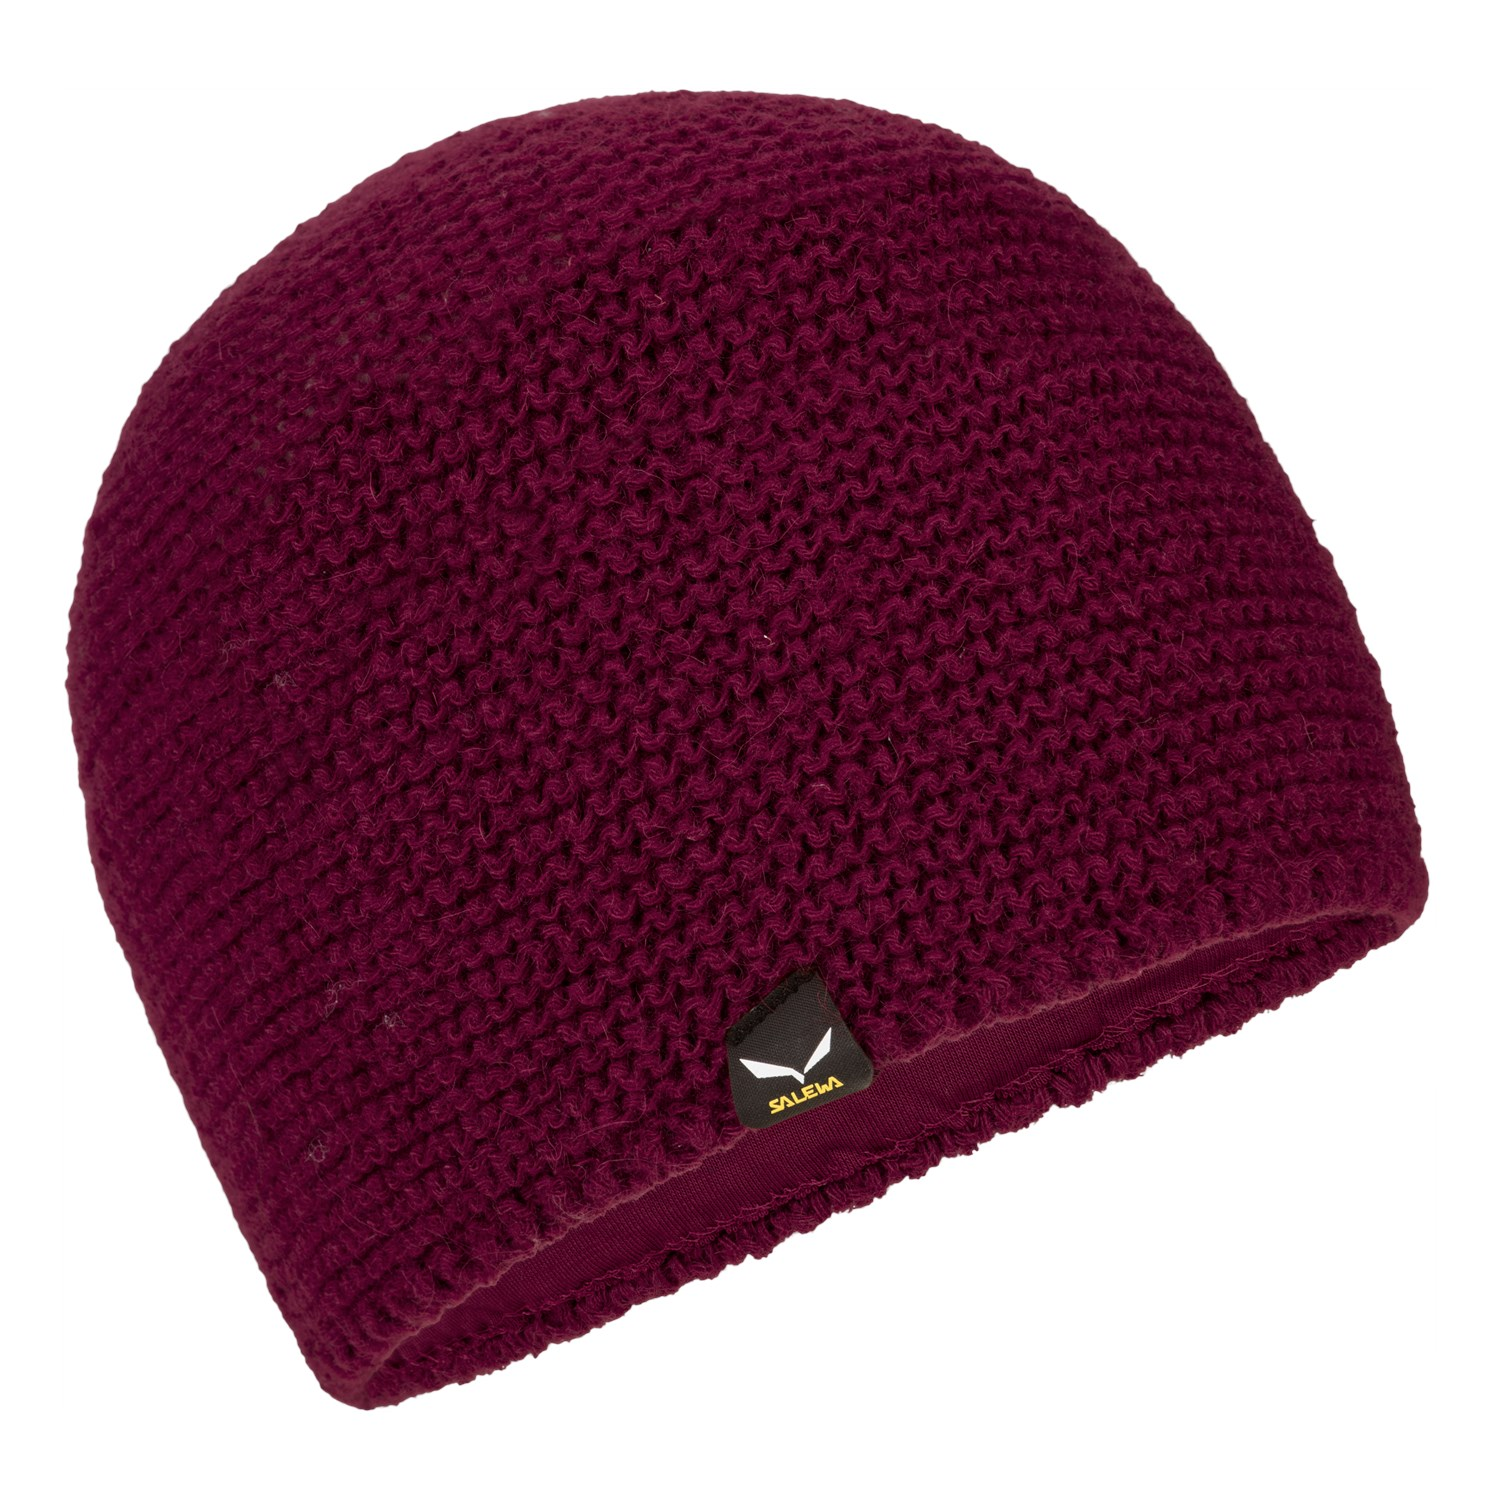 Salewa Sarner Wollbeanie Port Royal